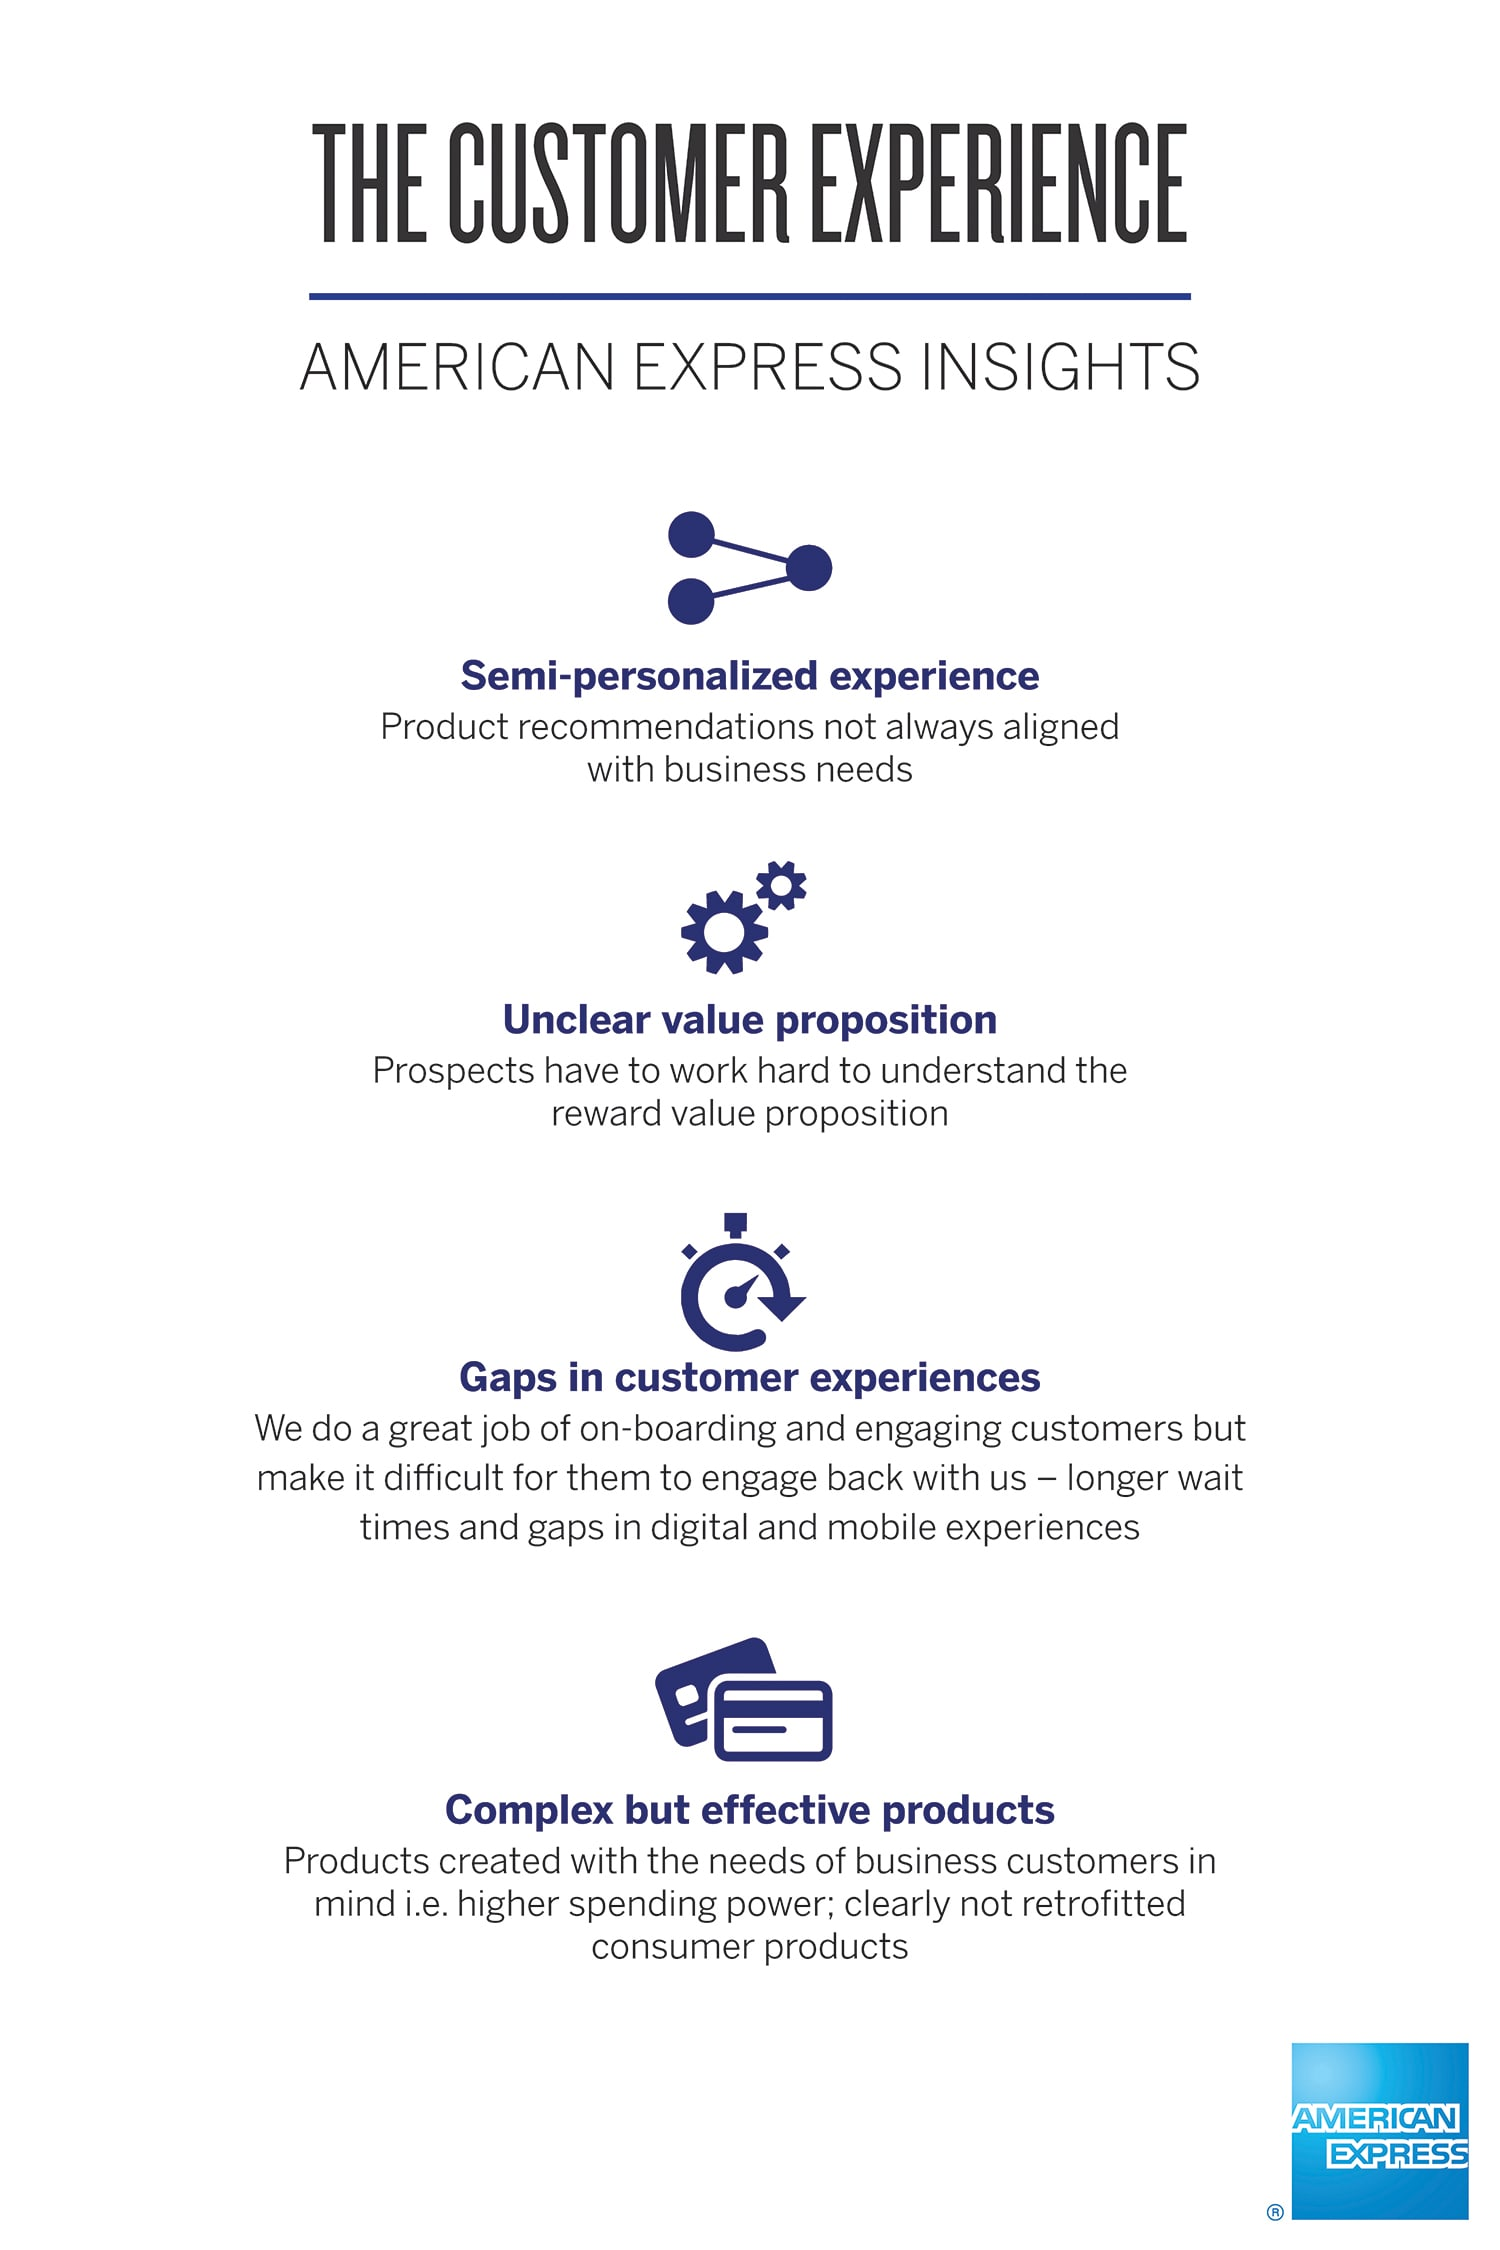 AMEX CUSTOMER  EXPERIENCE INSIGHT POSTER